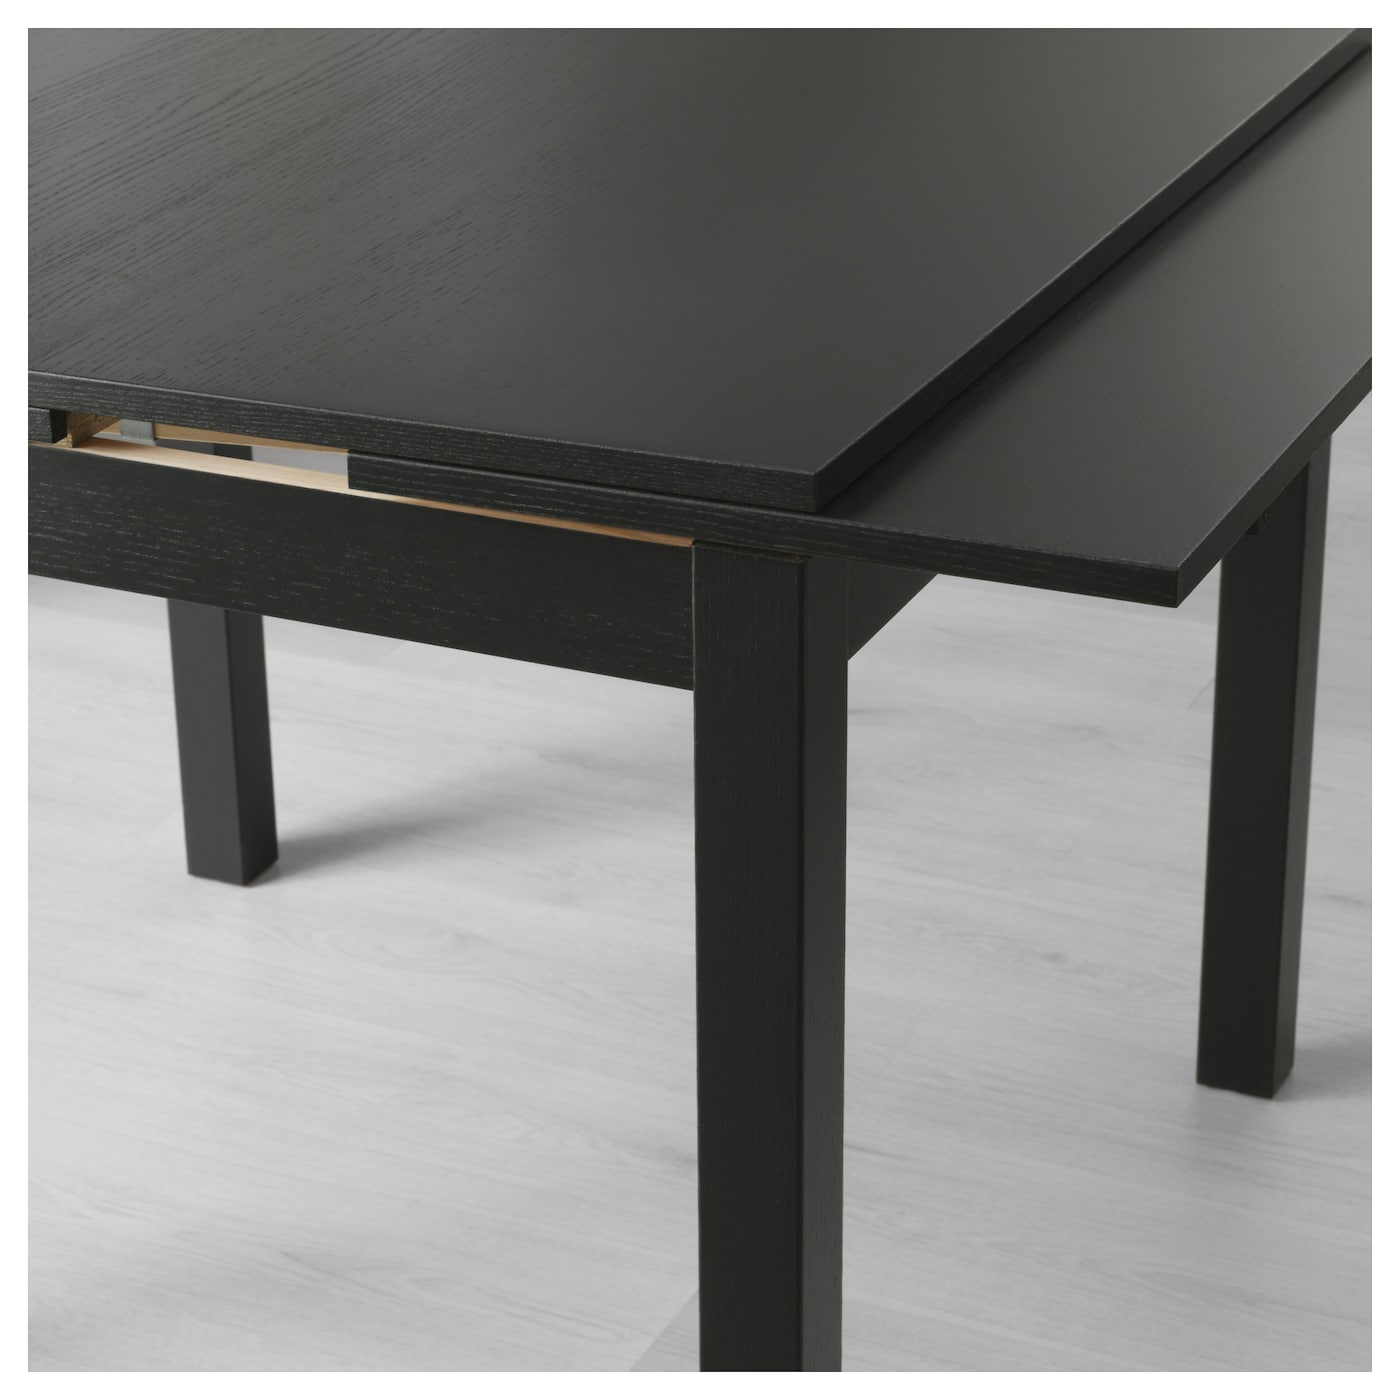 Bjursta extendable table brown black 90 129 168x90 cm ikea for Table ronde rabattable avec rallonge